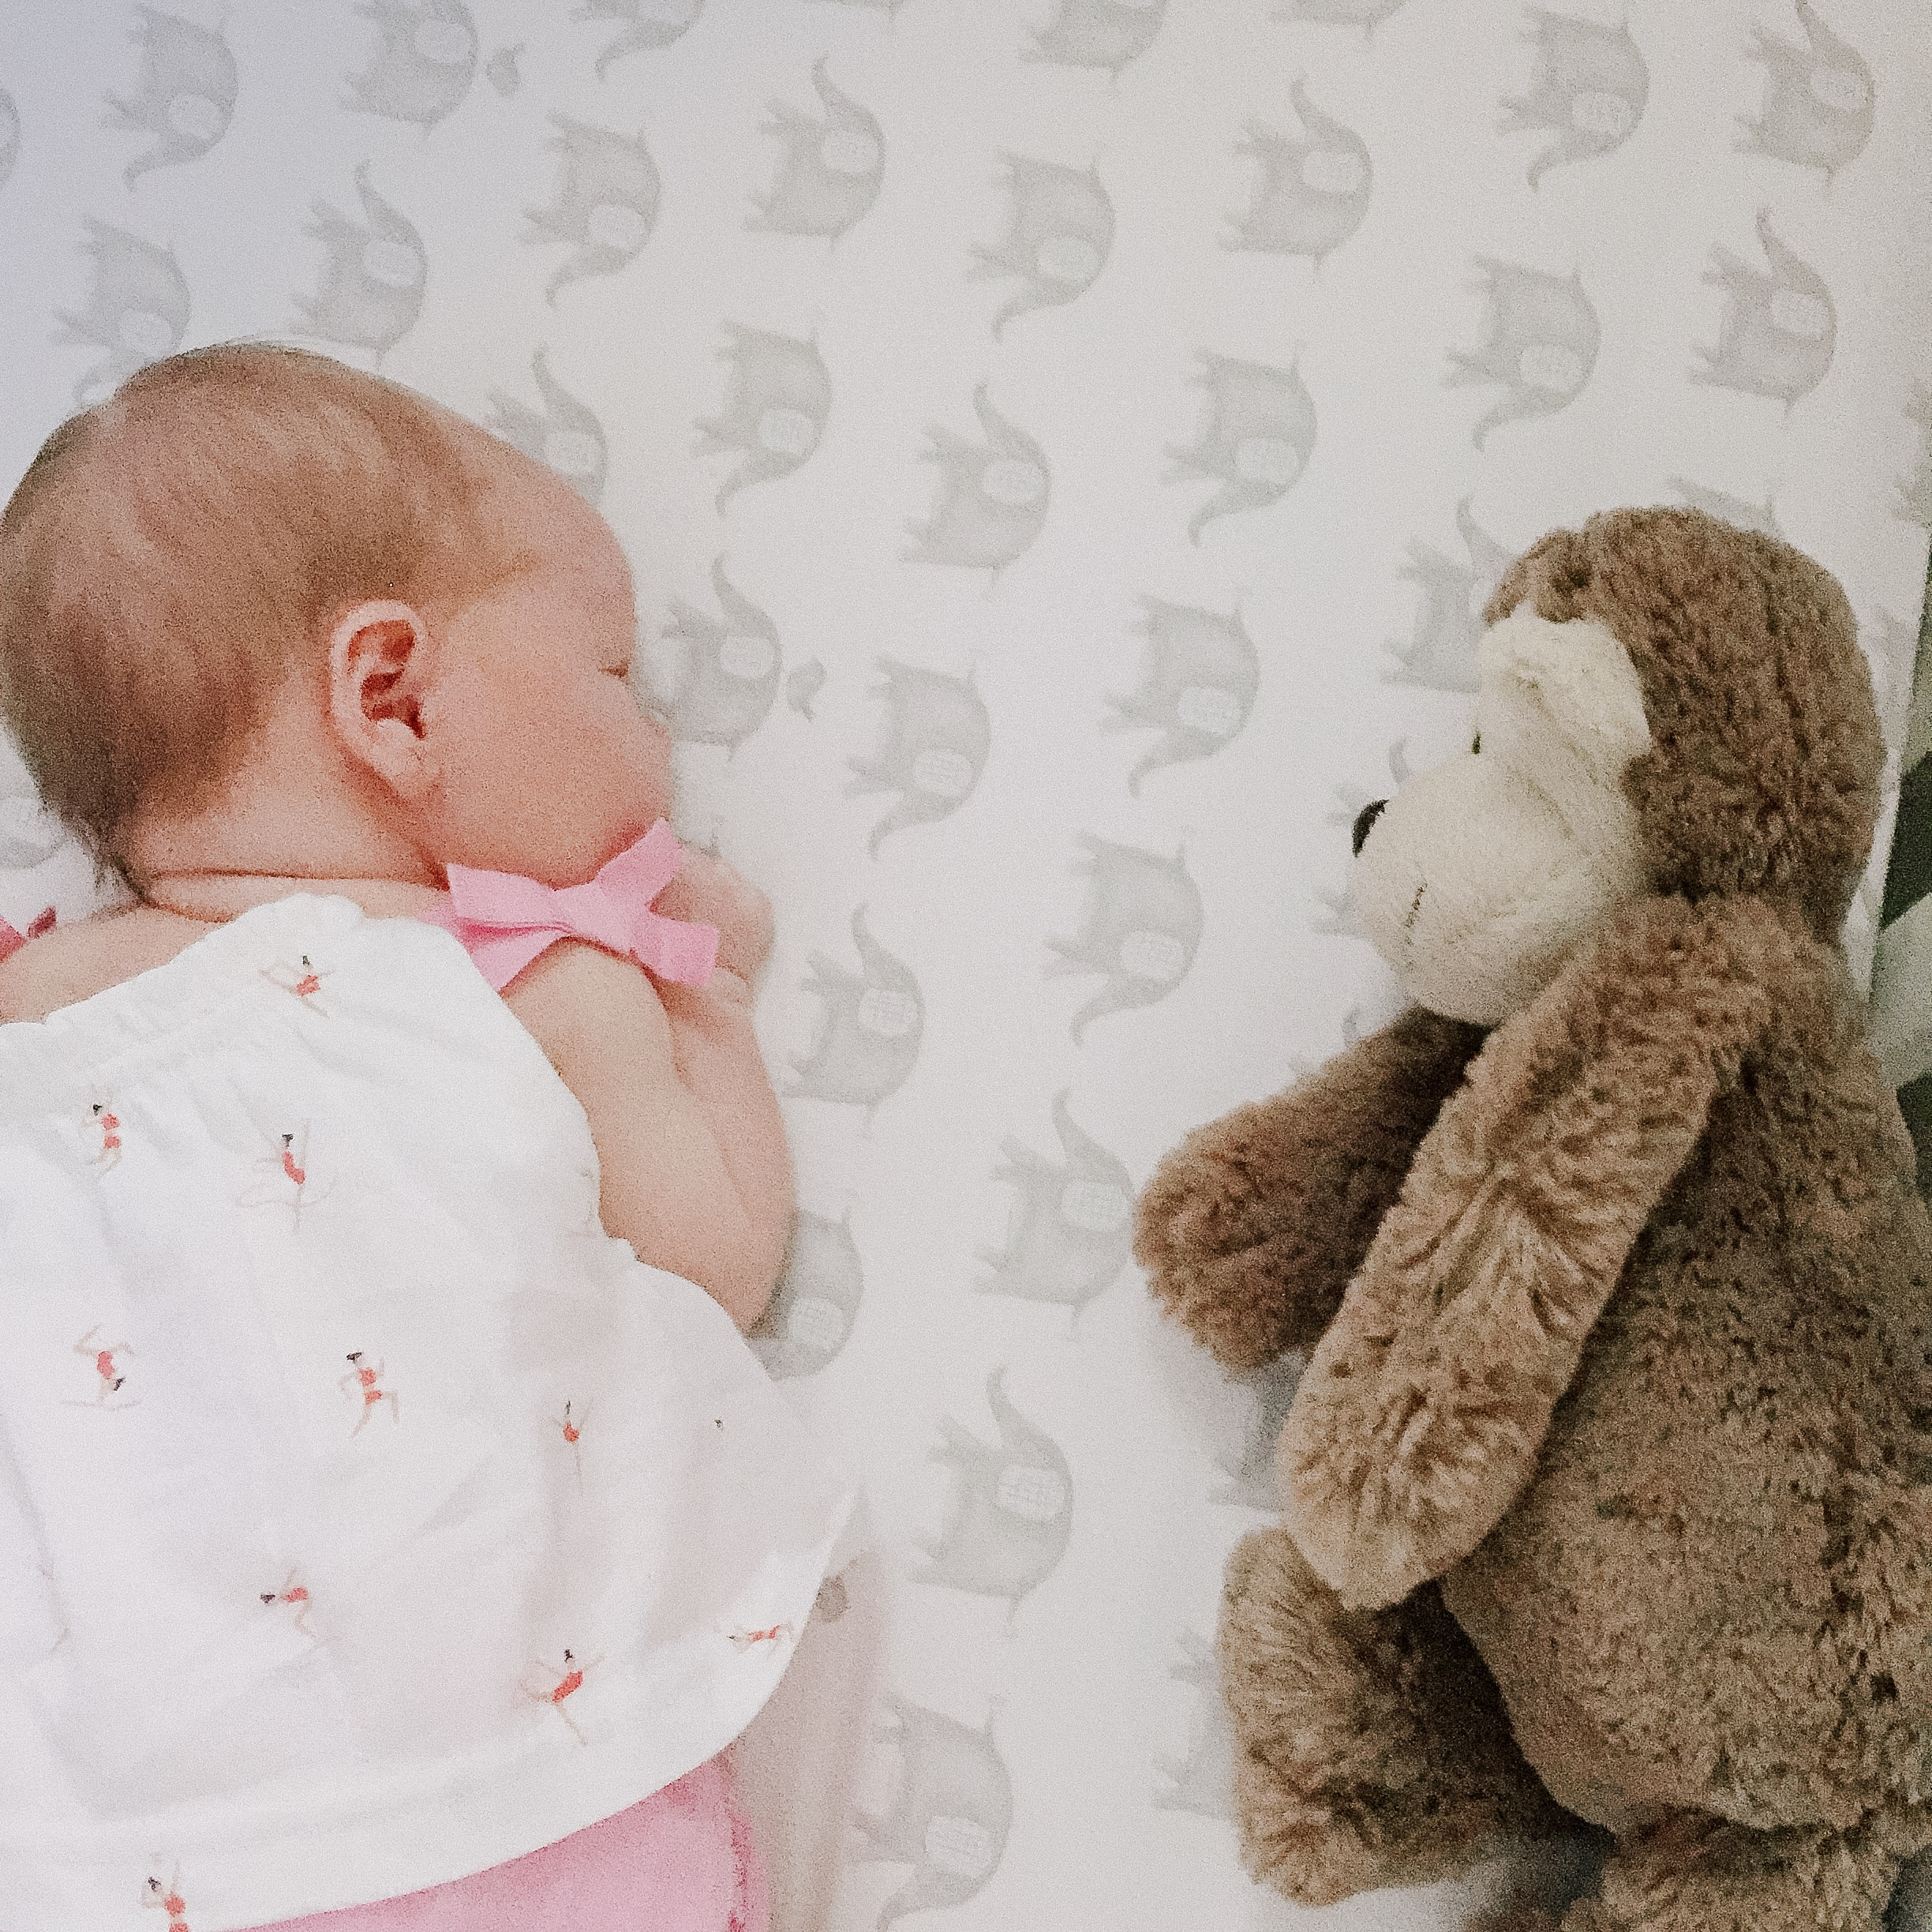 Baby Emma sleeping with a monkey toy